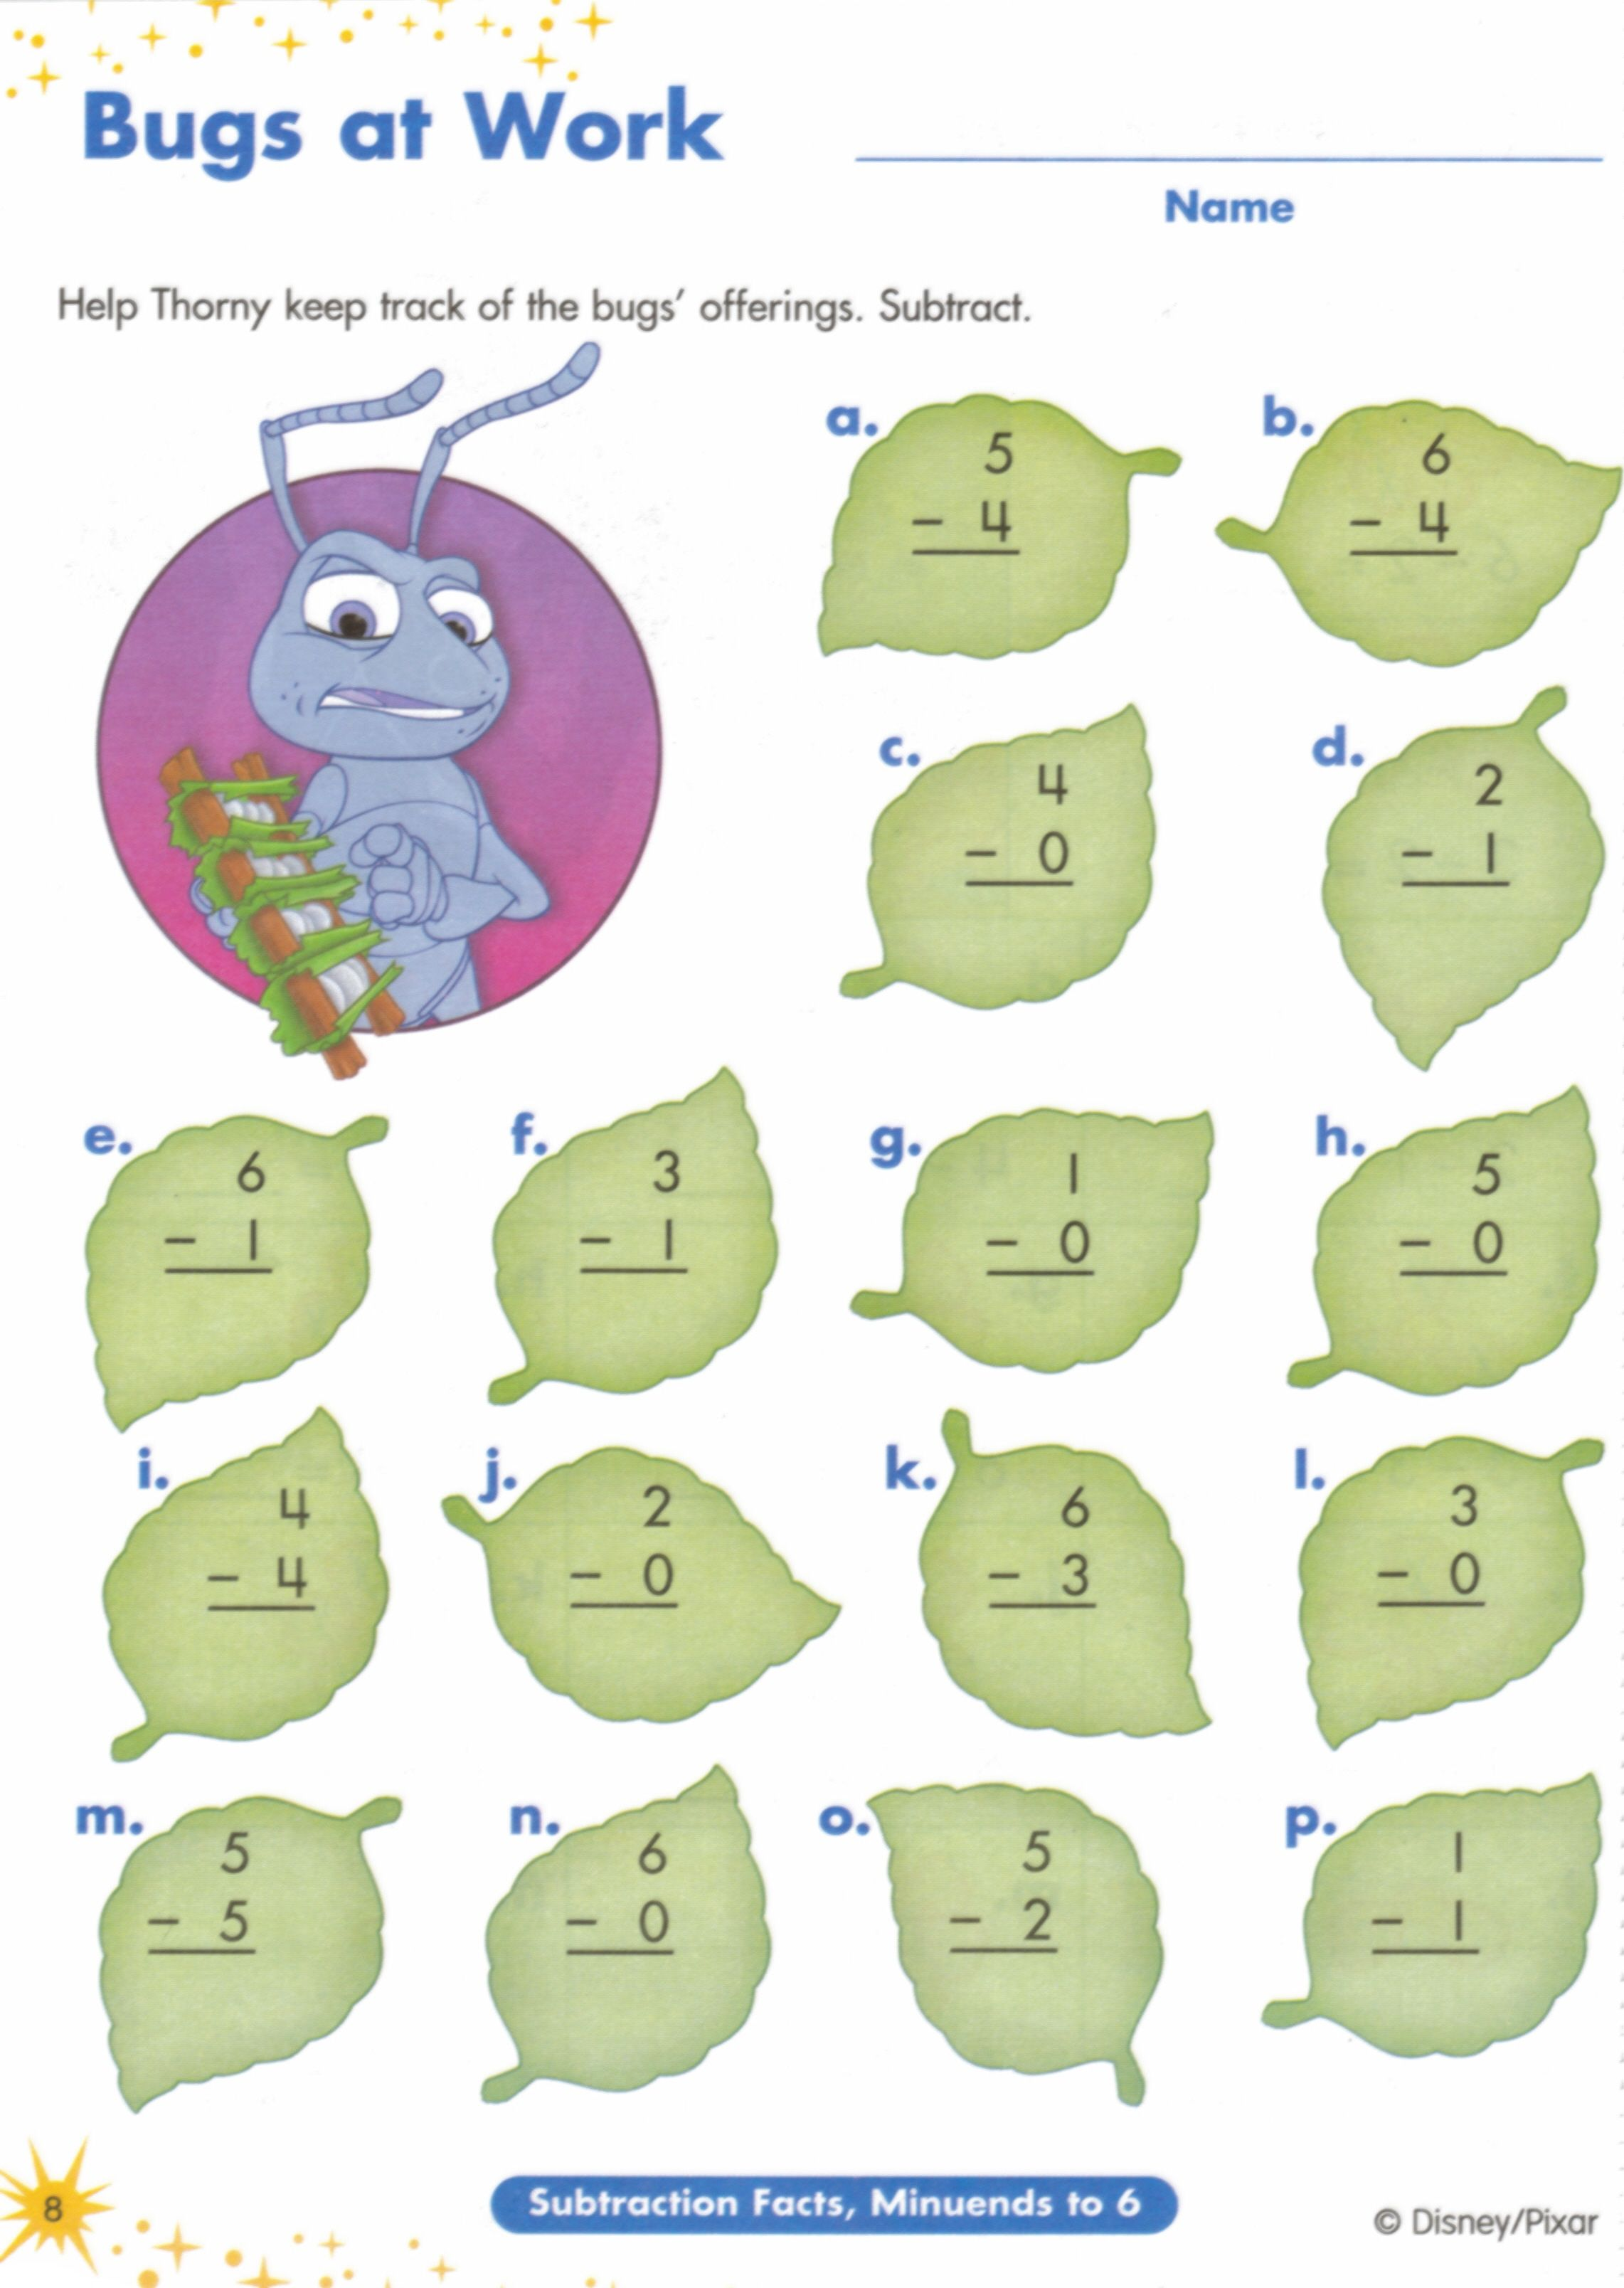 Weirdmailus  Nice  Images About Worksheets On Pinterest  Fun Facts For Kids  With Glamorous  Images About Worksheets On Pinterest  Fun Facts For Kids Earth Day Worksheets And Jungles With Delightful Second Grade Weather Worksheets Also Area And Perimeter Free Worksheets In Addition Fun Halloween Math Worksheets And Speech Therapy Articulation Worksheets As Well As Weather Worksheet Kindergarten Additionally Fun Problem Solving Worksheets From Pinterestcom With Weirdmailus  Glamorous  Images About Worksheets On Pinterest  Fun Facts For Kids  With Delightful  Images About Worksheets On Pinterest  Fun Facts For Kids Earth Day Worksheets And Jungles And Nice Second Grade Weather Worksheets Also Area And Perimeter Free Worksheets In Addition Fun Halloween Math Worksheets From Pinterestcom